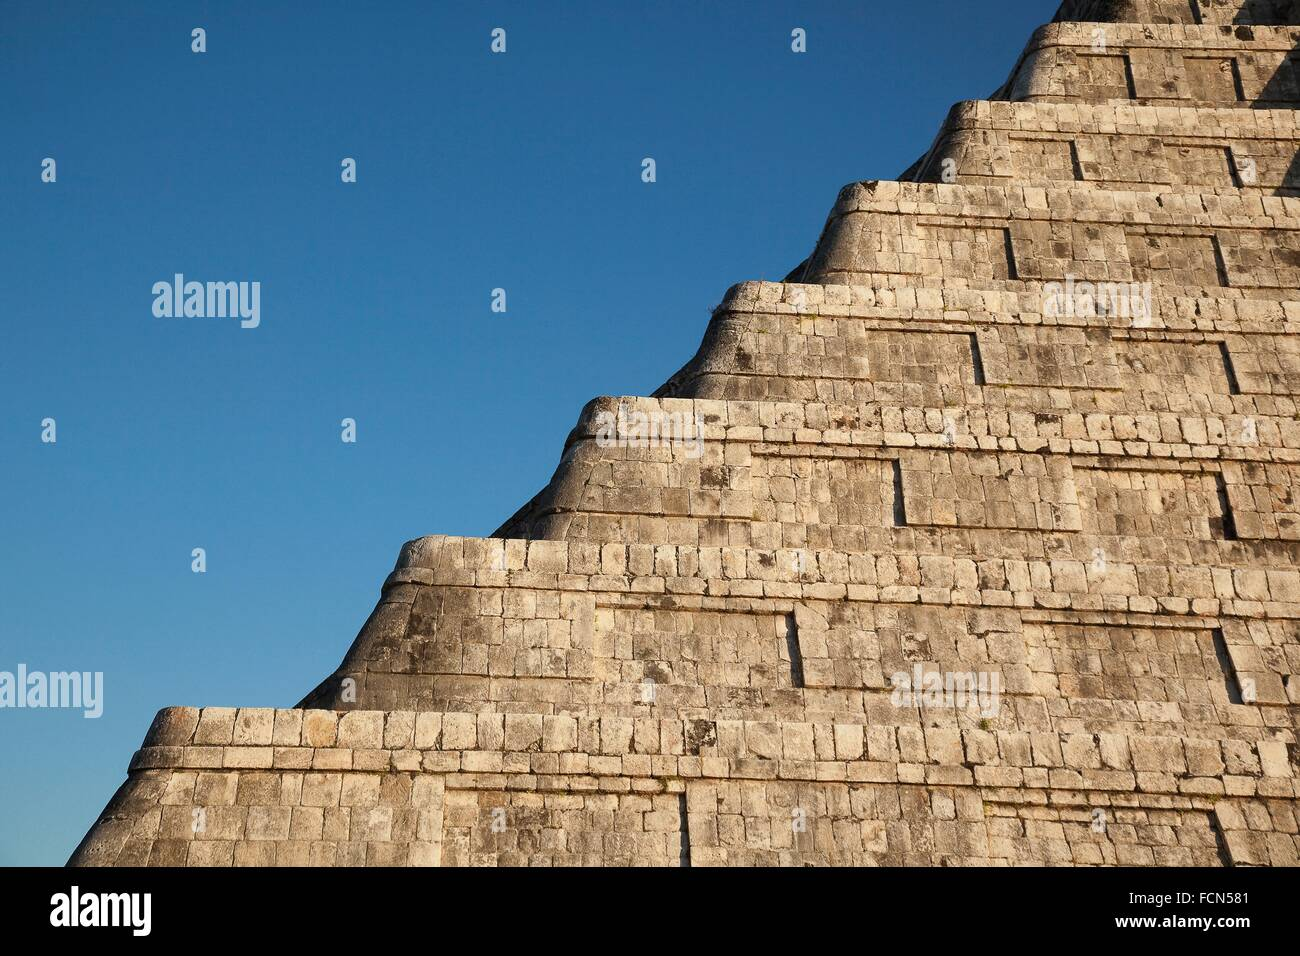 Detail of the Pyramid of Kukulcan-El Castillo, Maya Archeological Site Chichen Itza, Yucatan Province, Mexico, Central - Stock Image